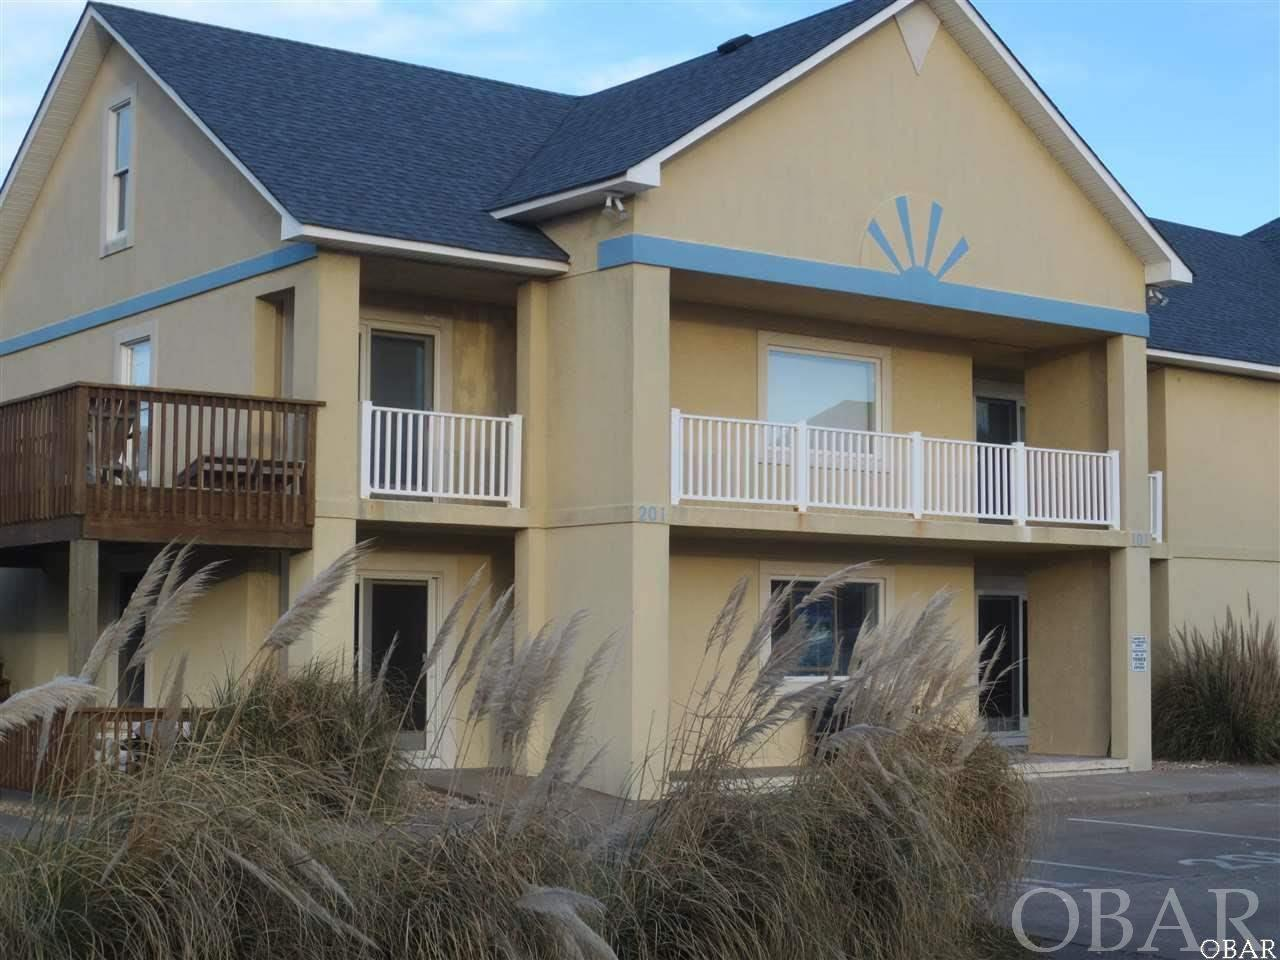 57211 Atlantic View Drive,Hatteras,NC 27943,2 Bedrooms Bedrooms,2 BathroomsBathrooms,Residential,Atlantic View Drive,101252